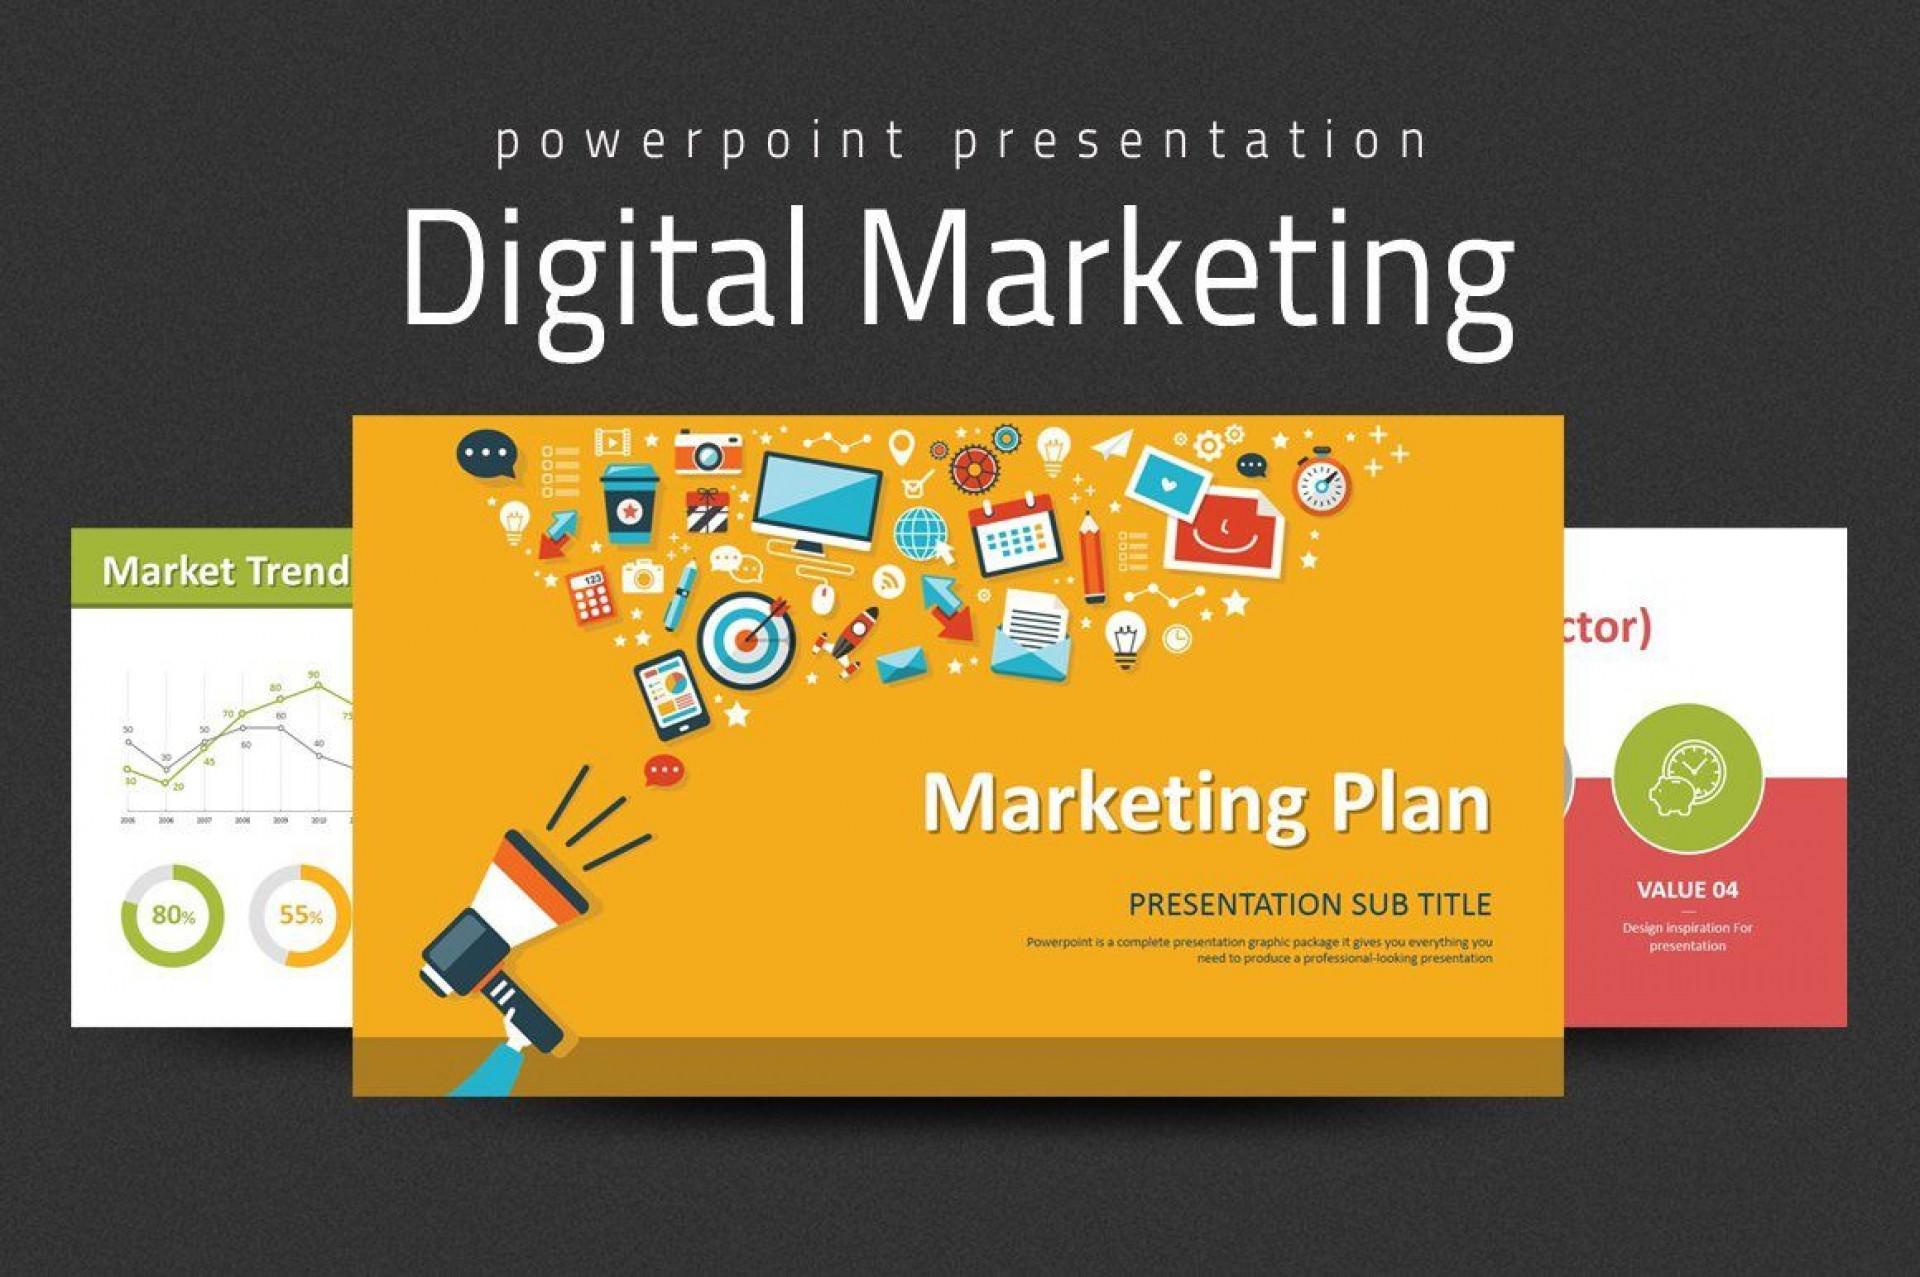 000 Formidable Digital Marketing Plan Template Free High Def  Ppt Download1920